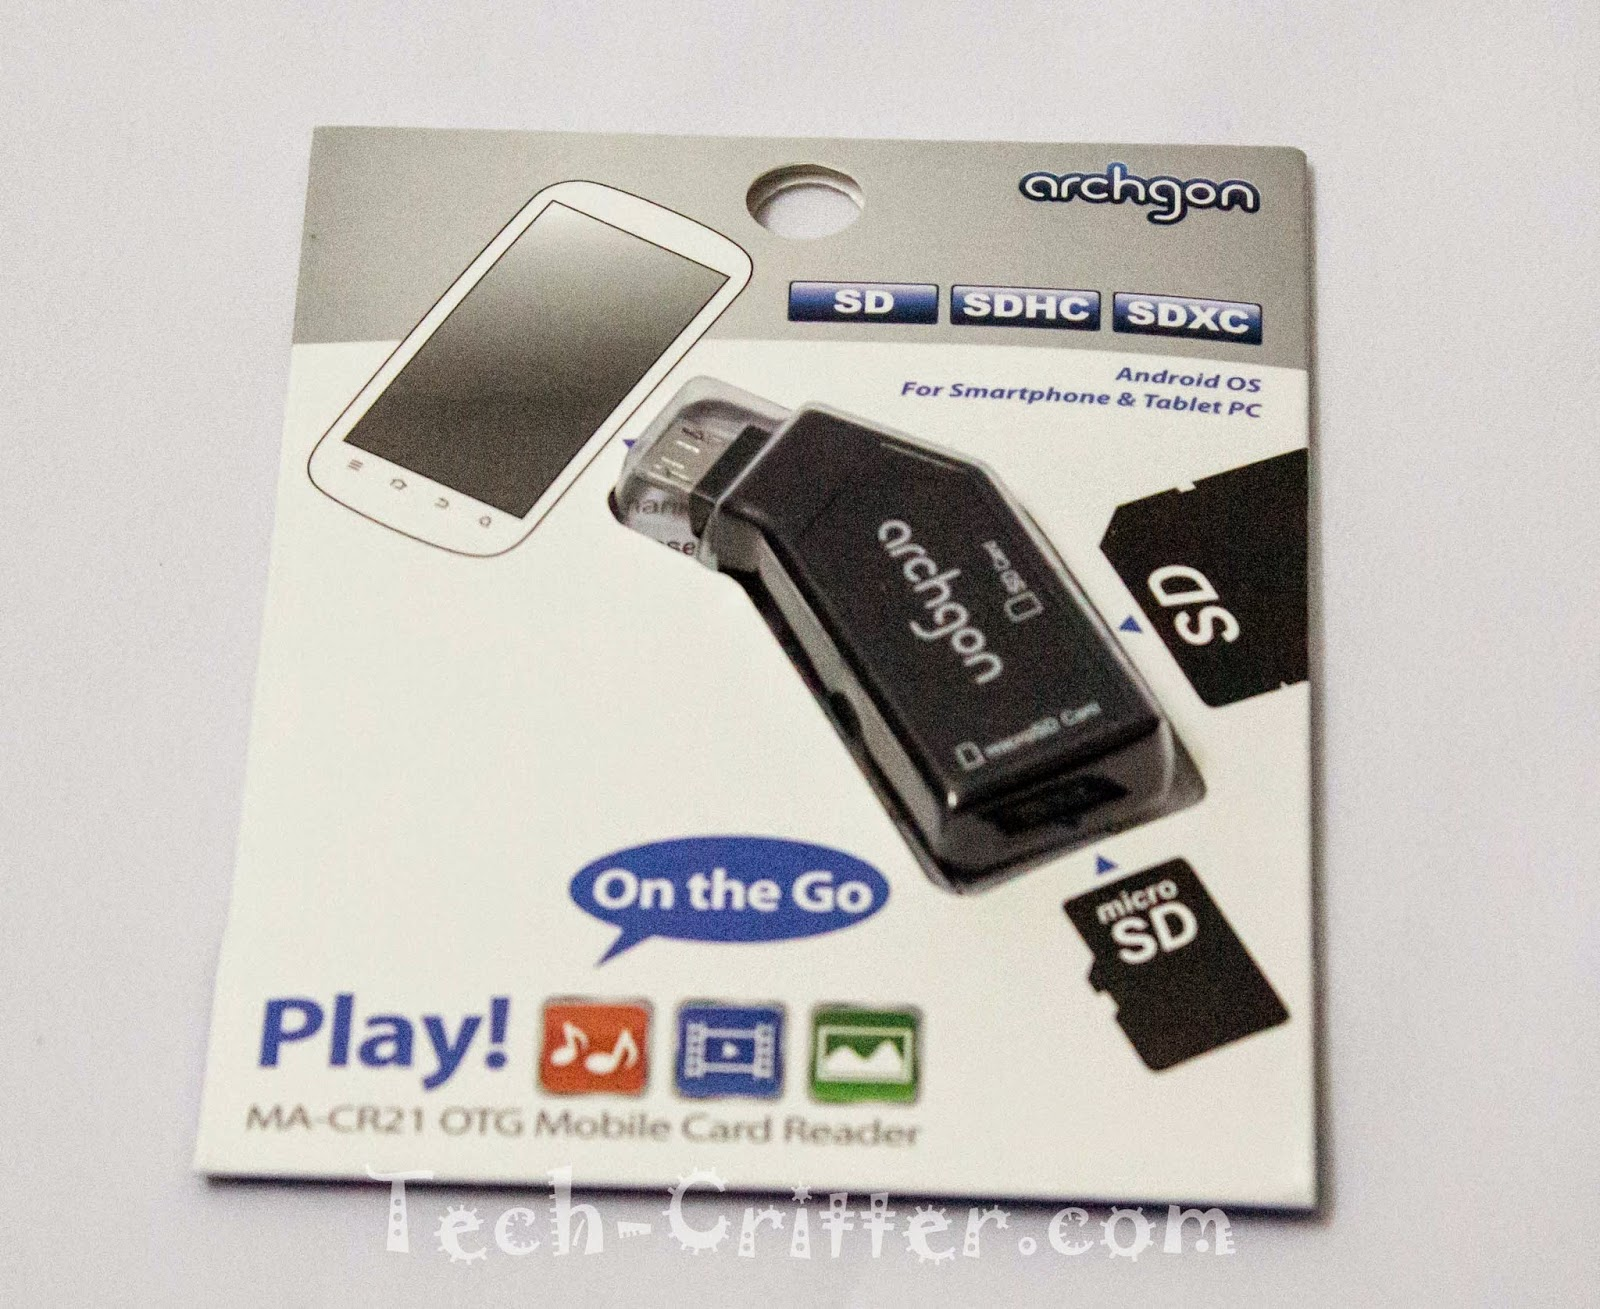 Unboxing and Review: Archgon Play! OTG Mobile Card Reader 21